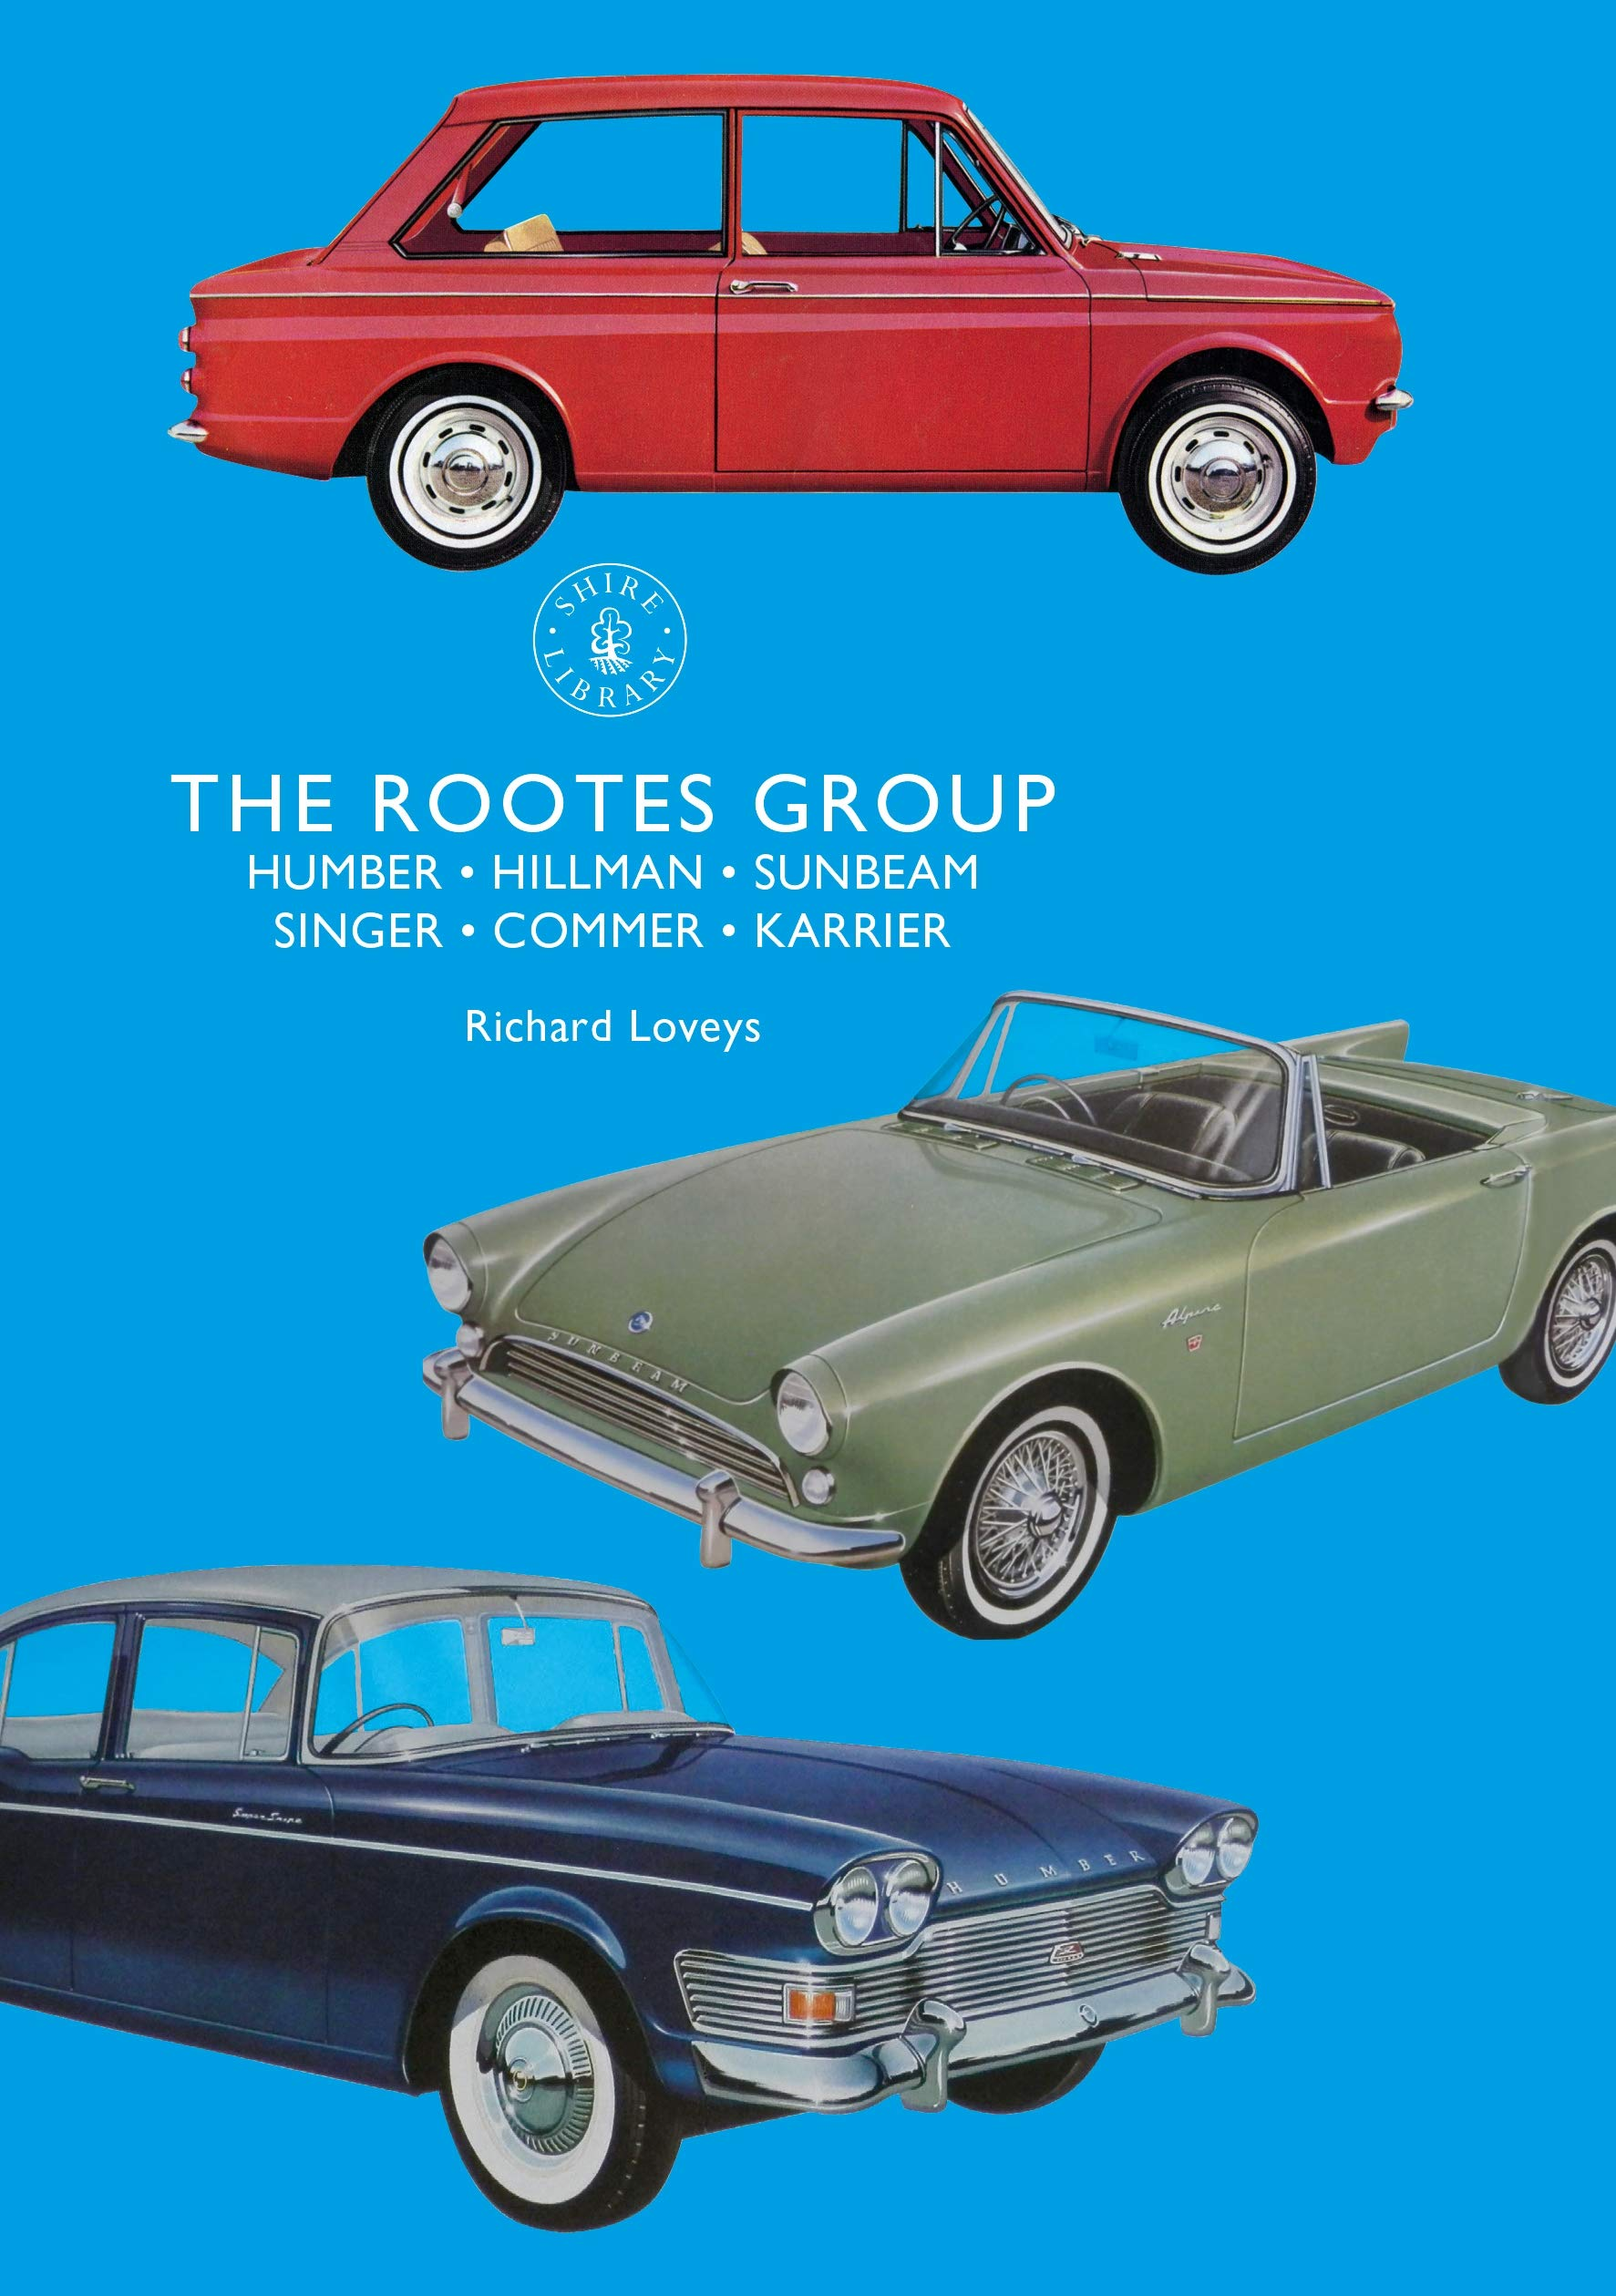 Sunbeam Humber Rootes parts lists Hillman Singer